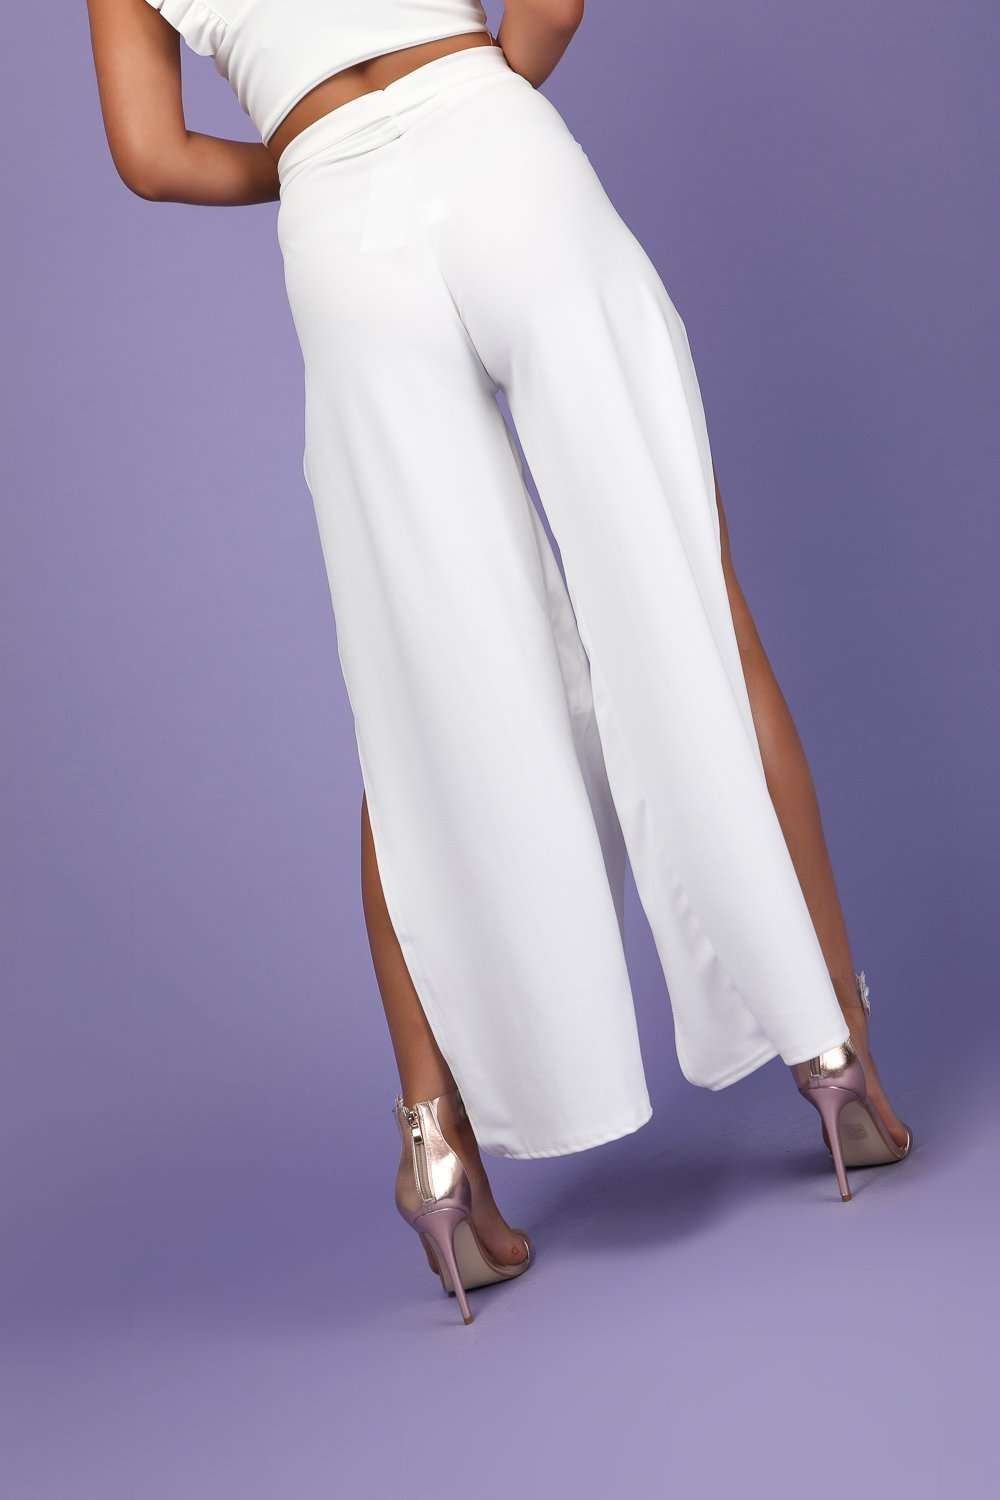 Annah Belted High Waist Split Leg Trousers - bejealous-com